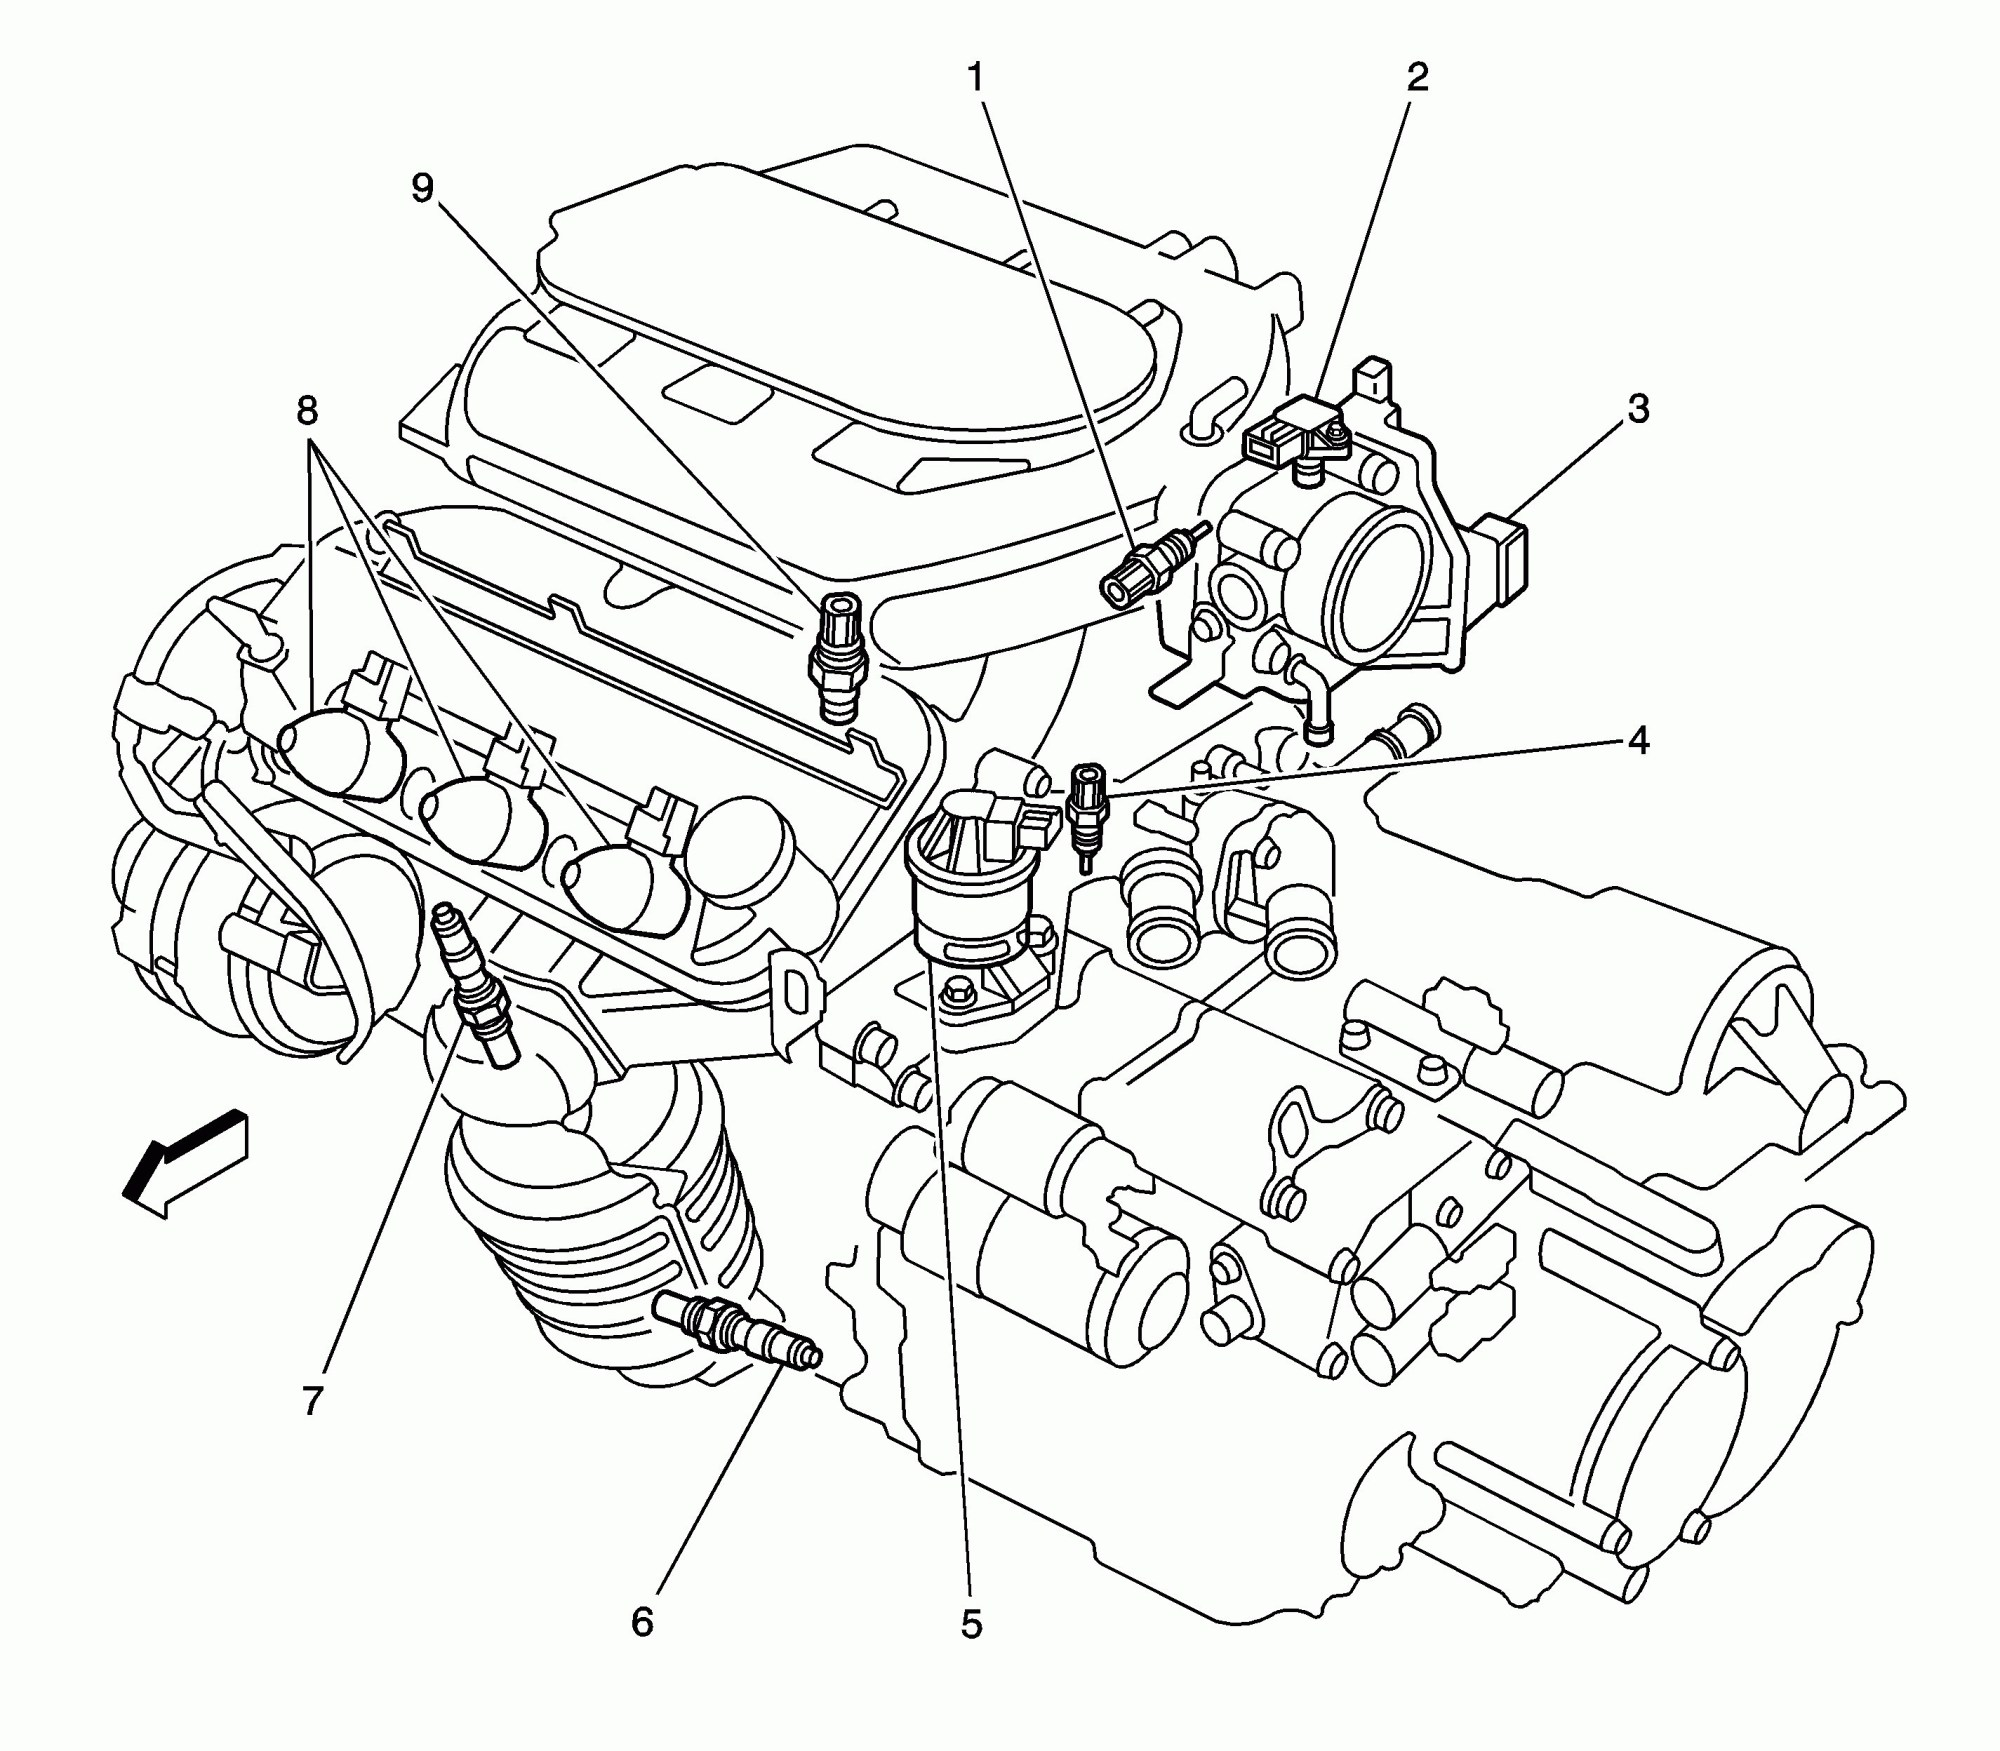 hight resolution of 2000 pontiac montana engine diagram 1999 pontiac grand am engine fuse diagram pontiac wiring diagrams of